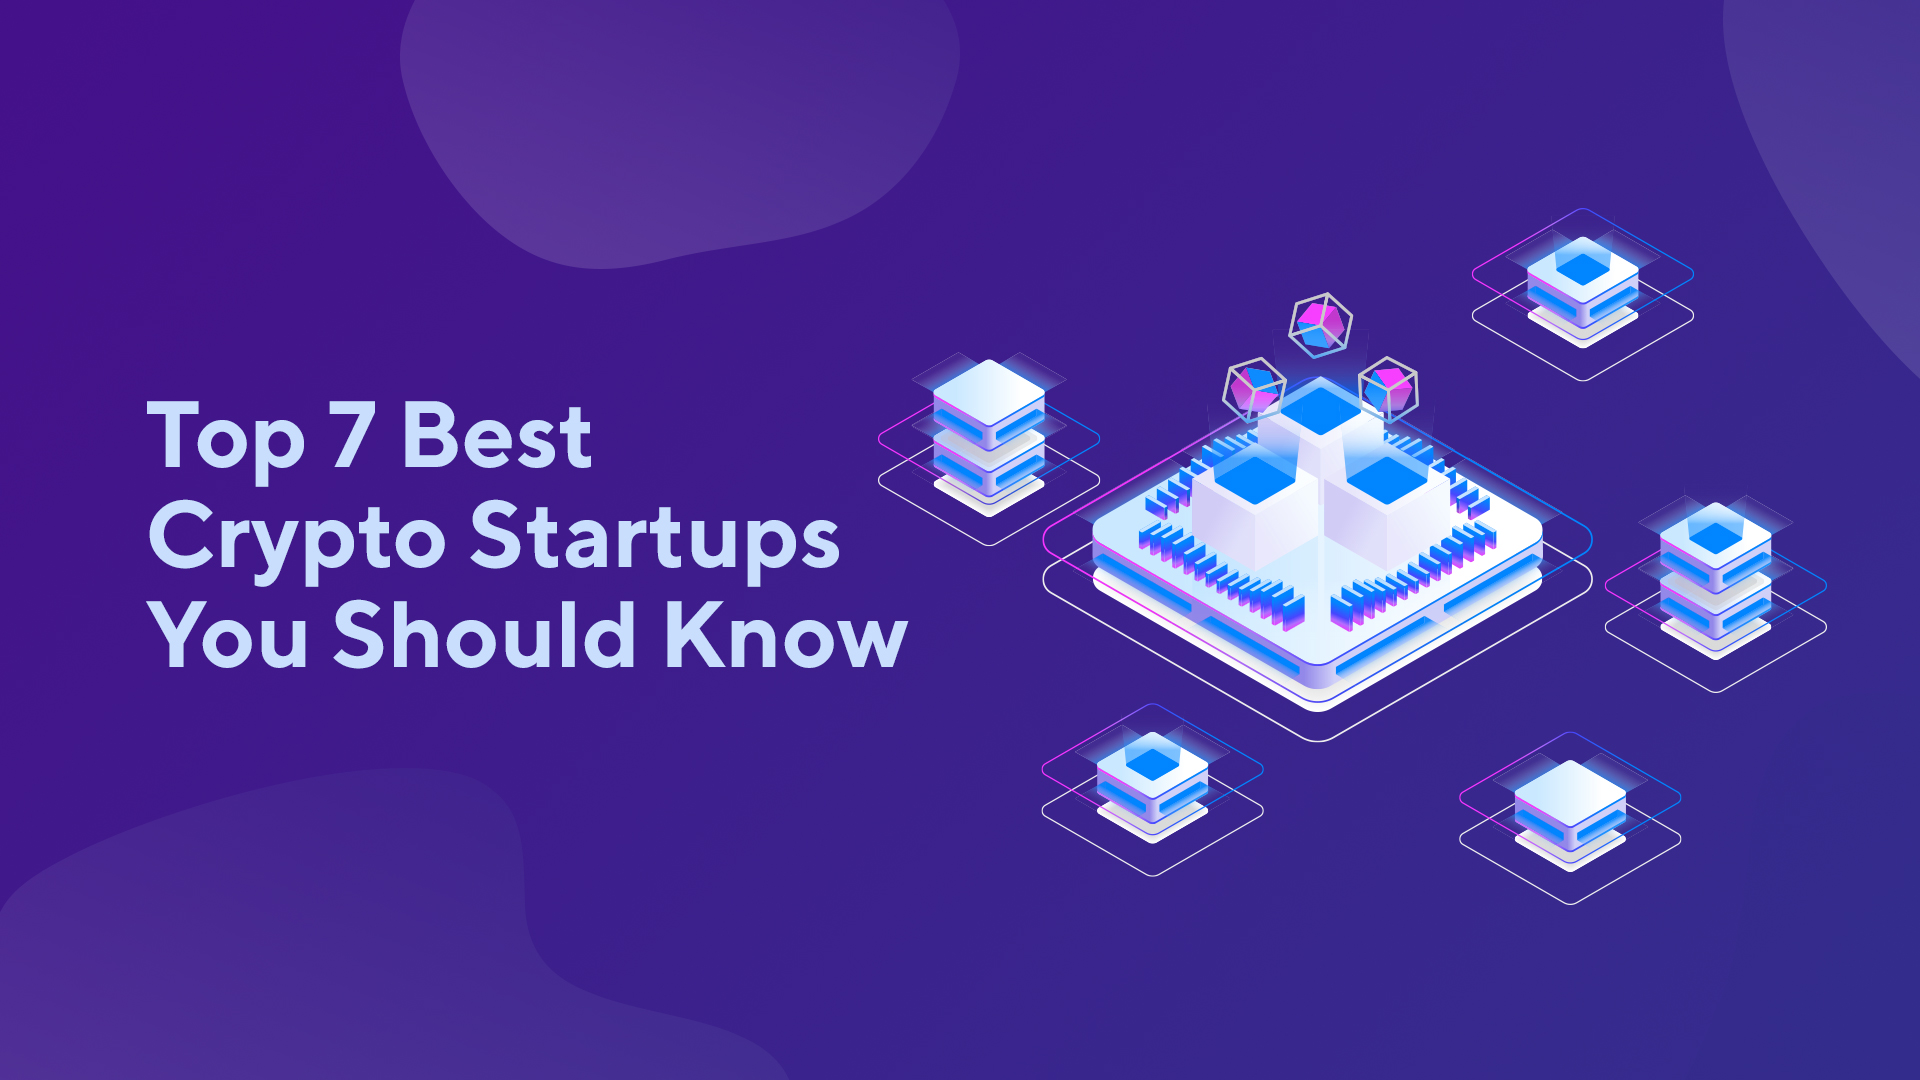 Top 7 Best Cryptocurrency Startups You Should Know